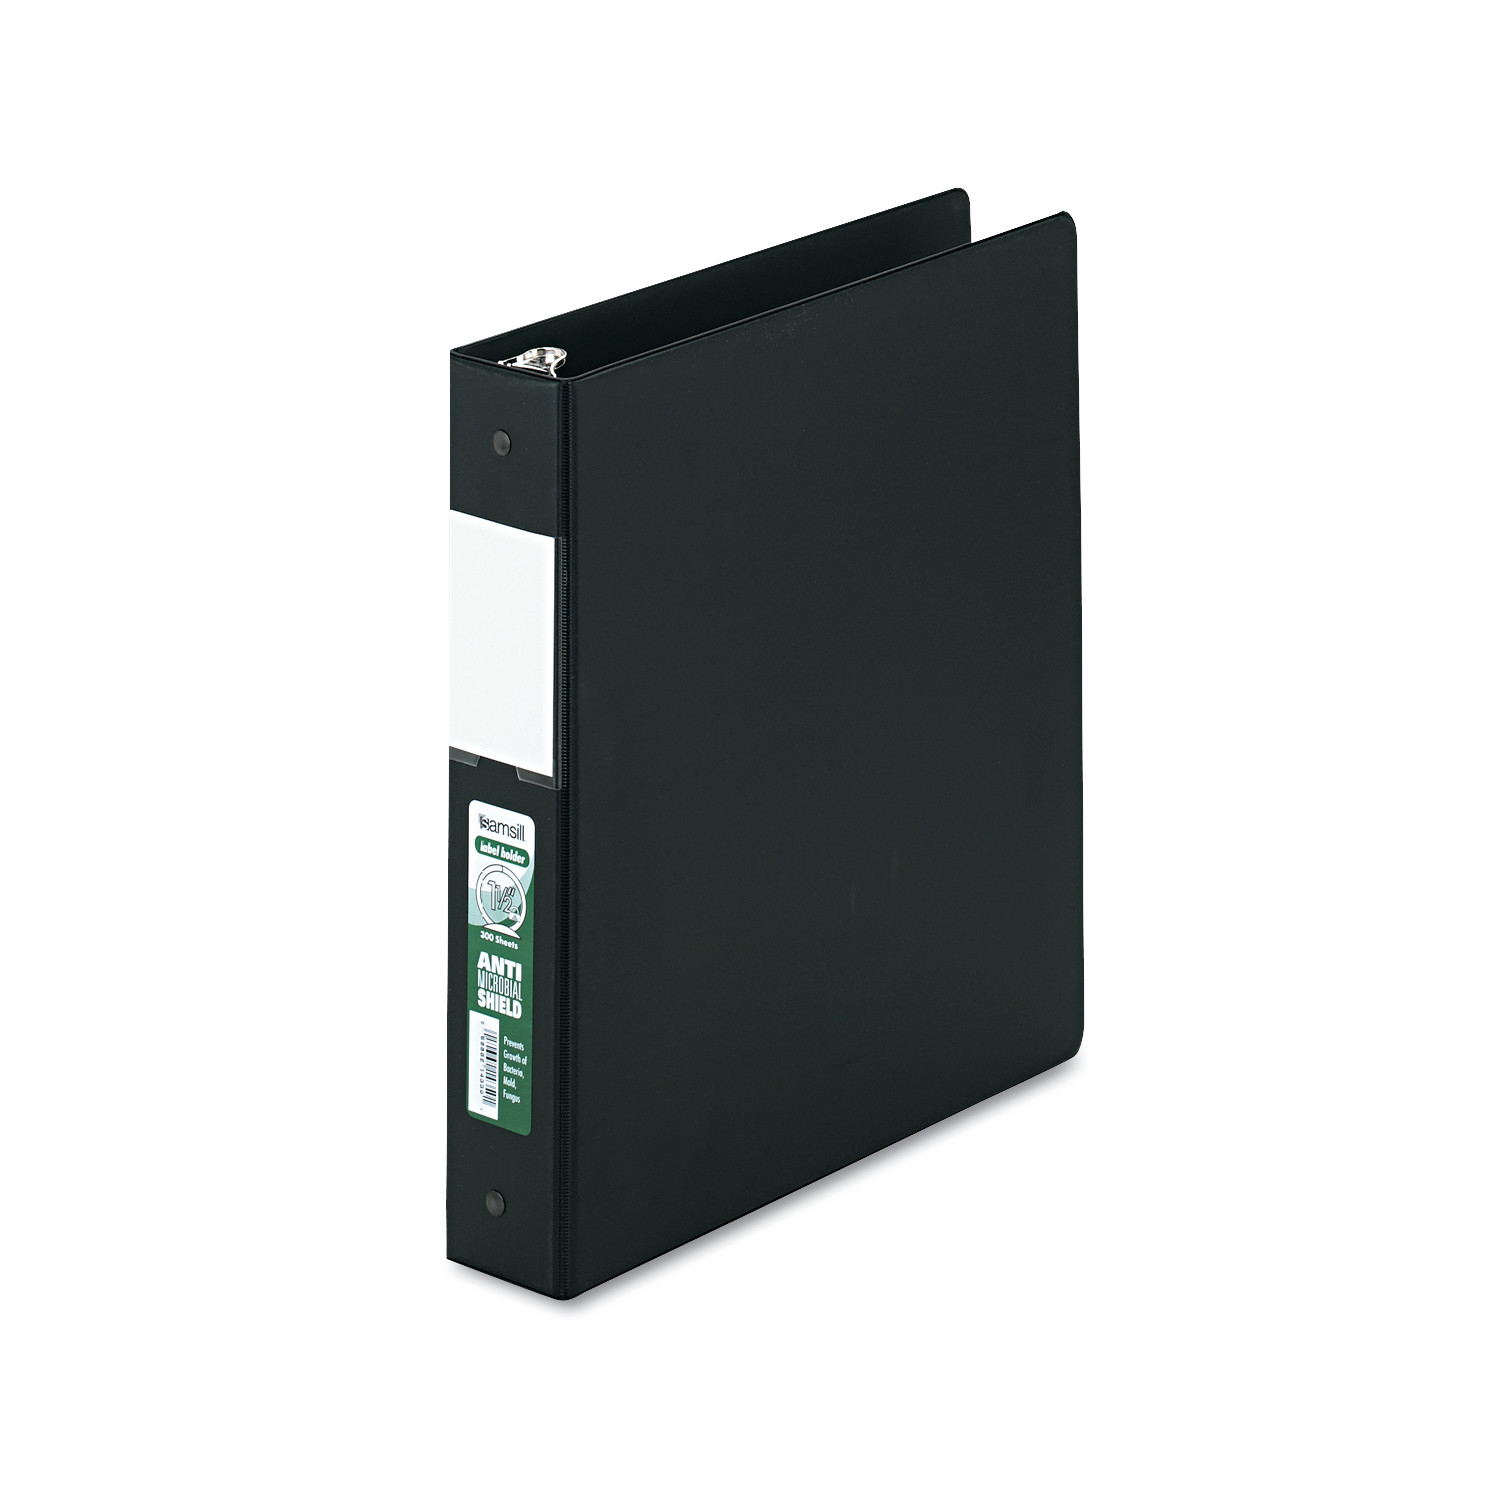 """Samsill Clean Touch Locking Round Ring Reference Binder, Antimicrobial, 1.5"""" Cap, Black -SAM14350 by SAMSILL CORPORATION"""